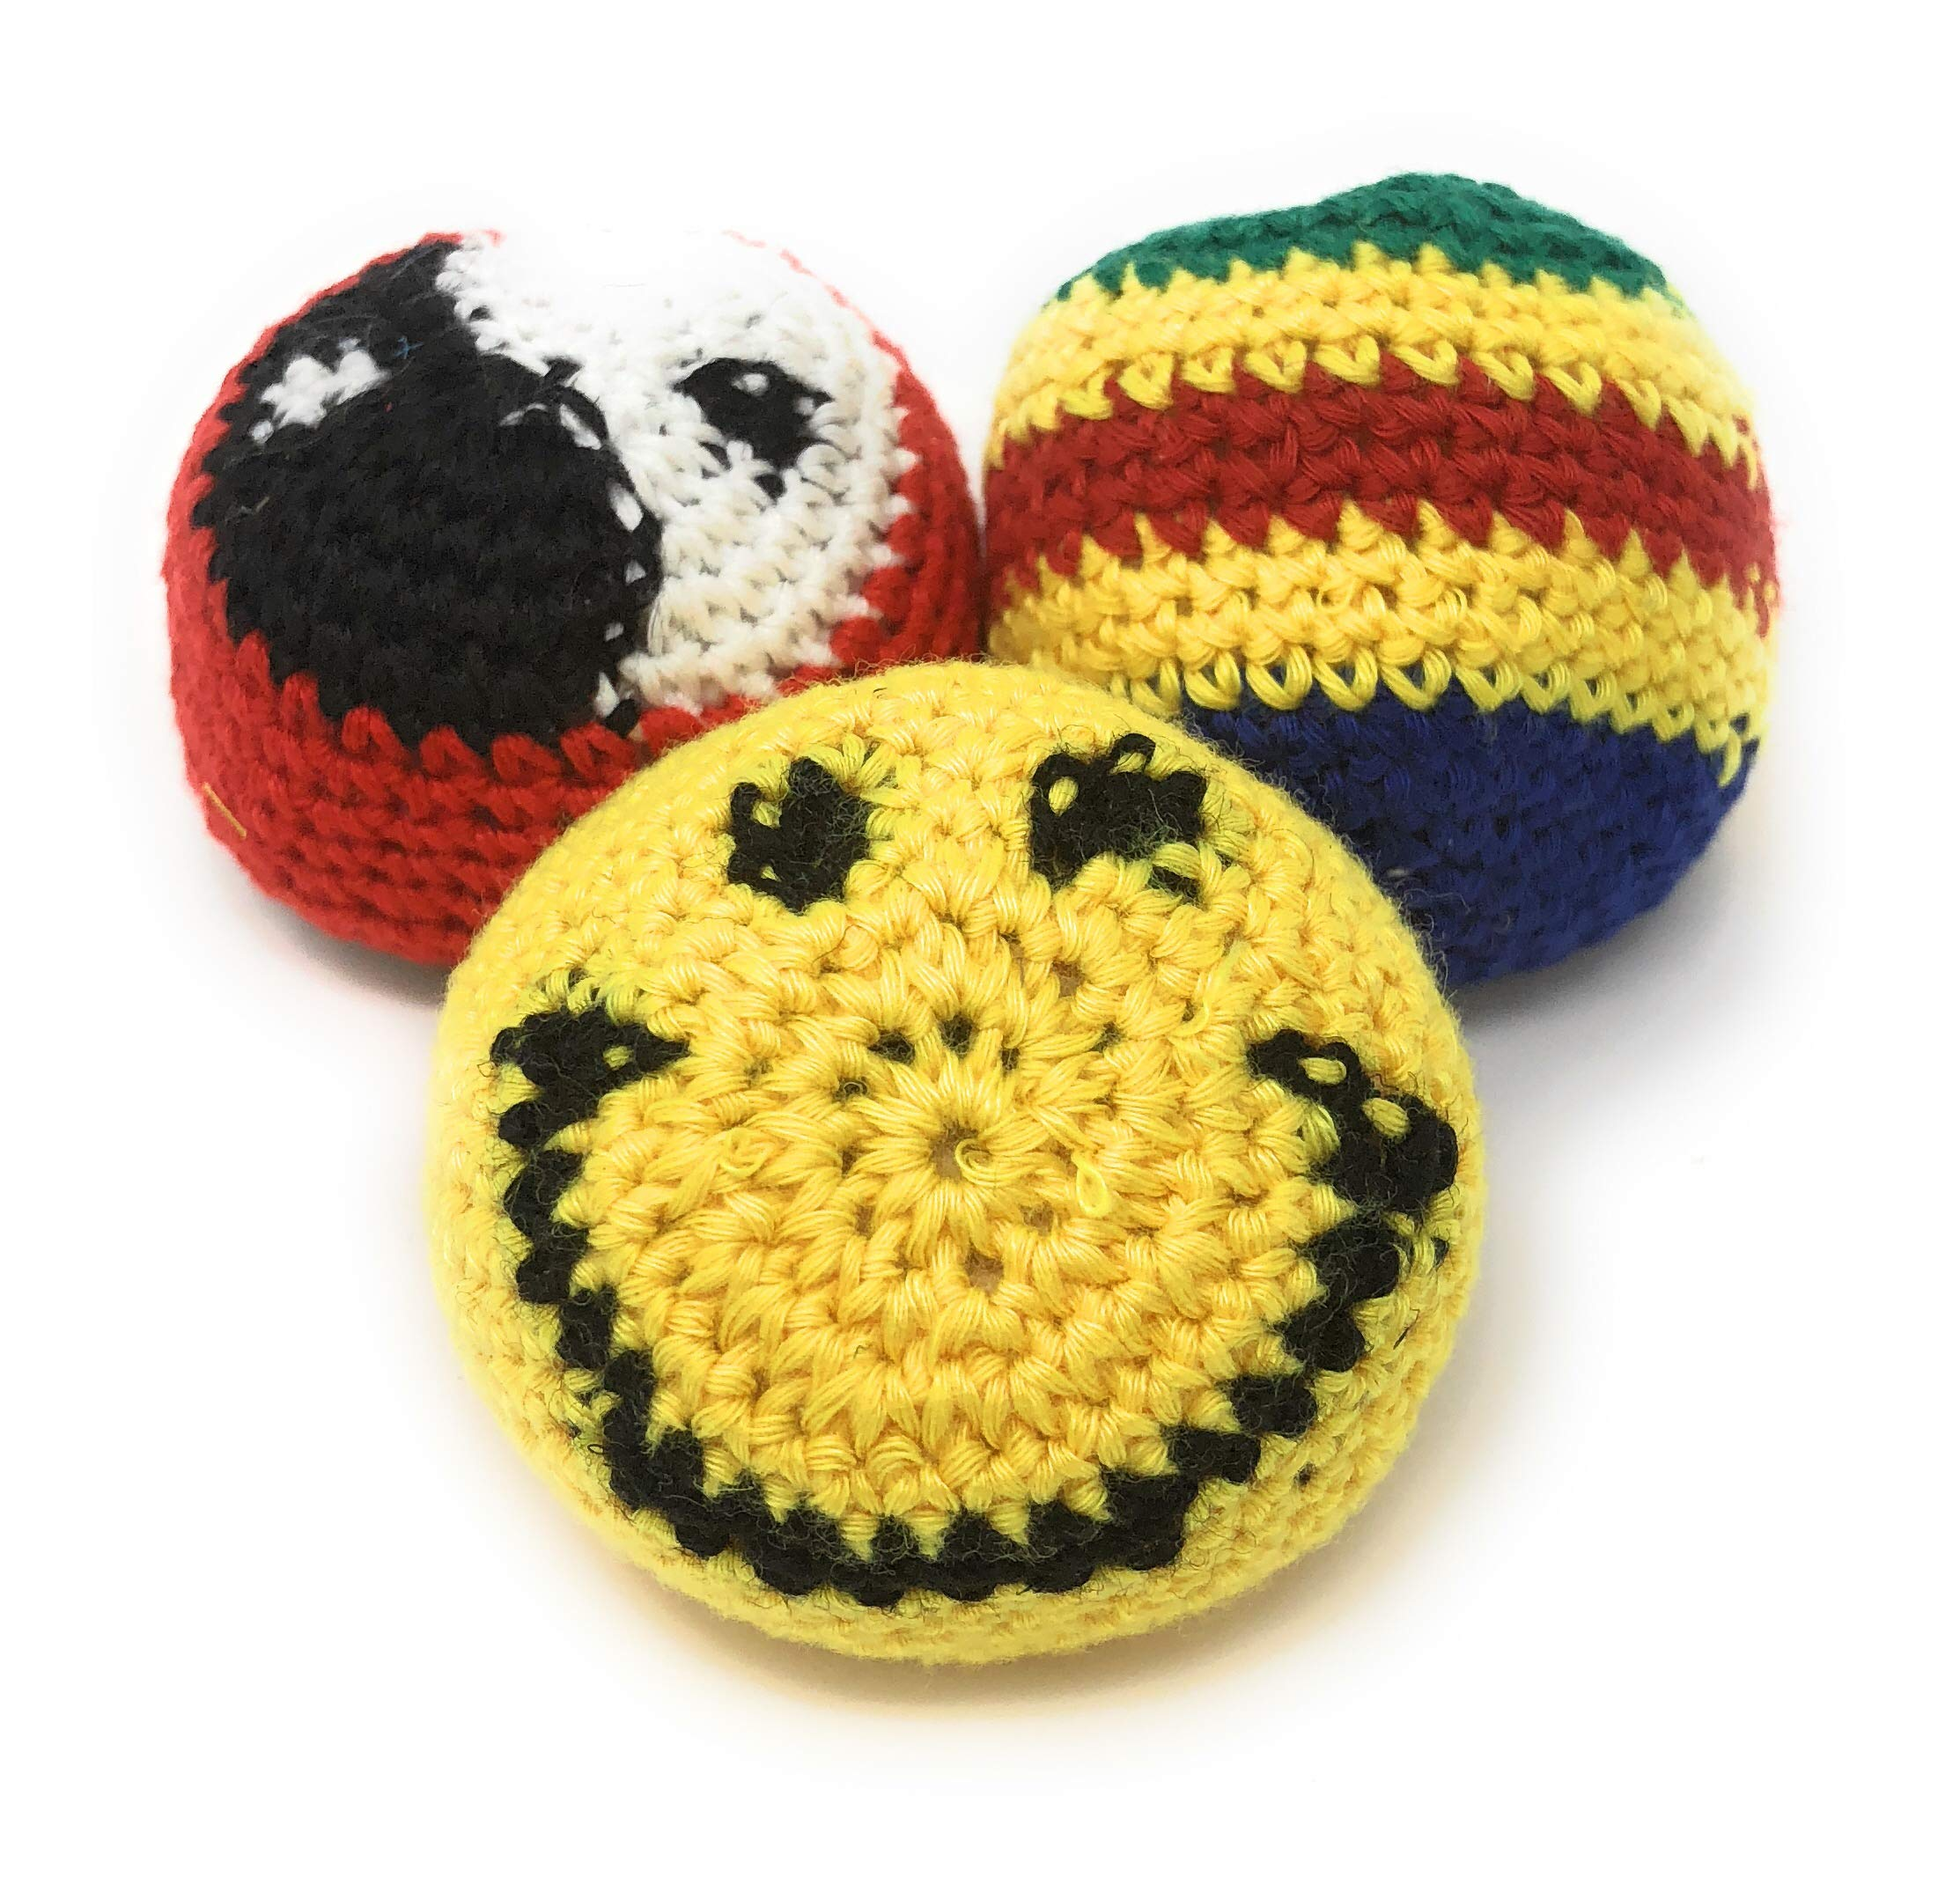 Hacky Sacks - Footbags (3 Pack) with Cool Knitted Designs, Filled with Plastic Beads and Styrofoam Balls for Better Play by Happy Sacks